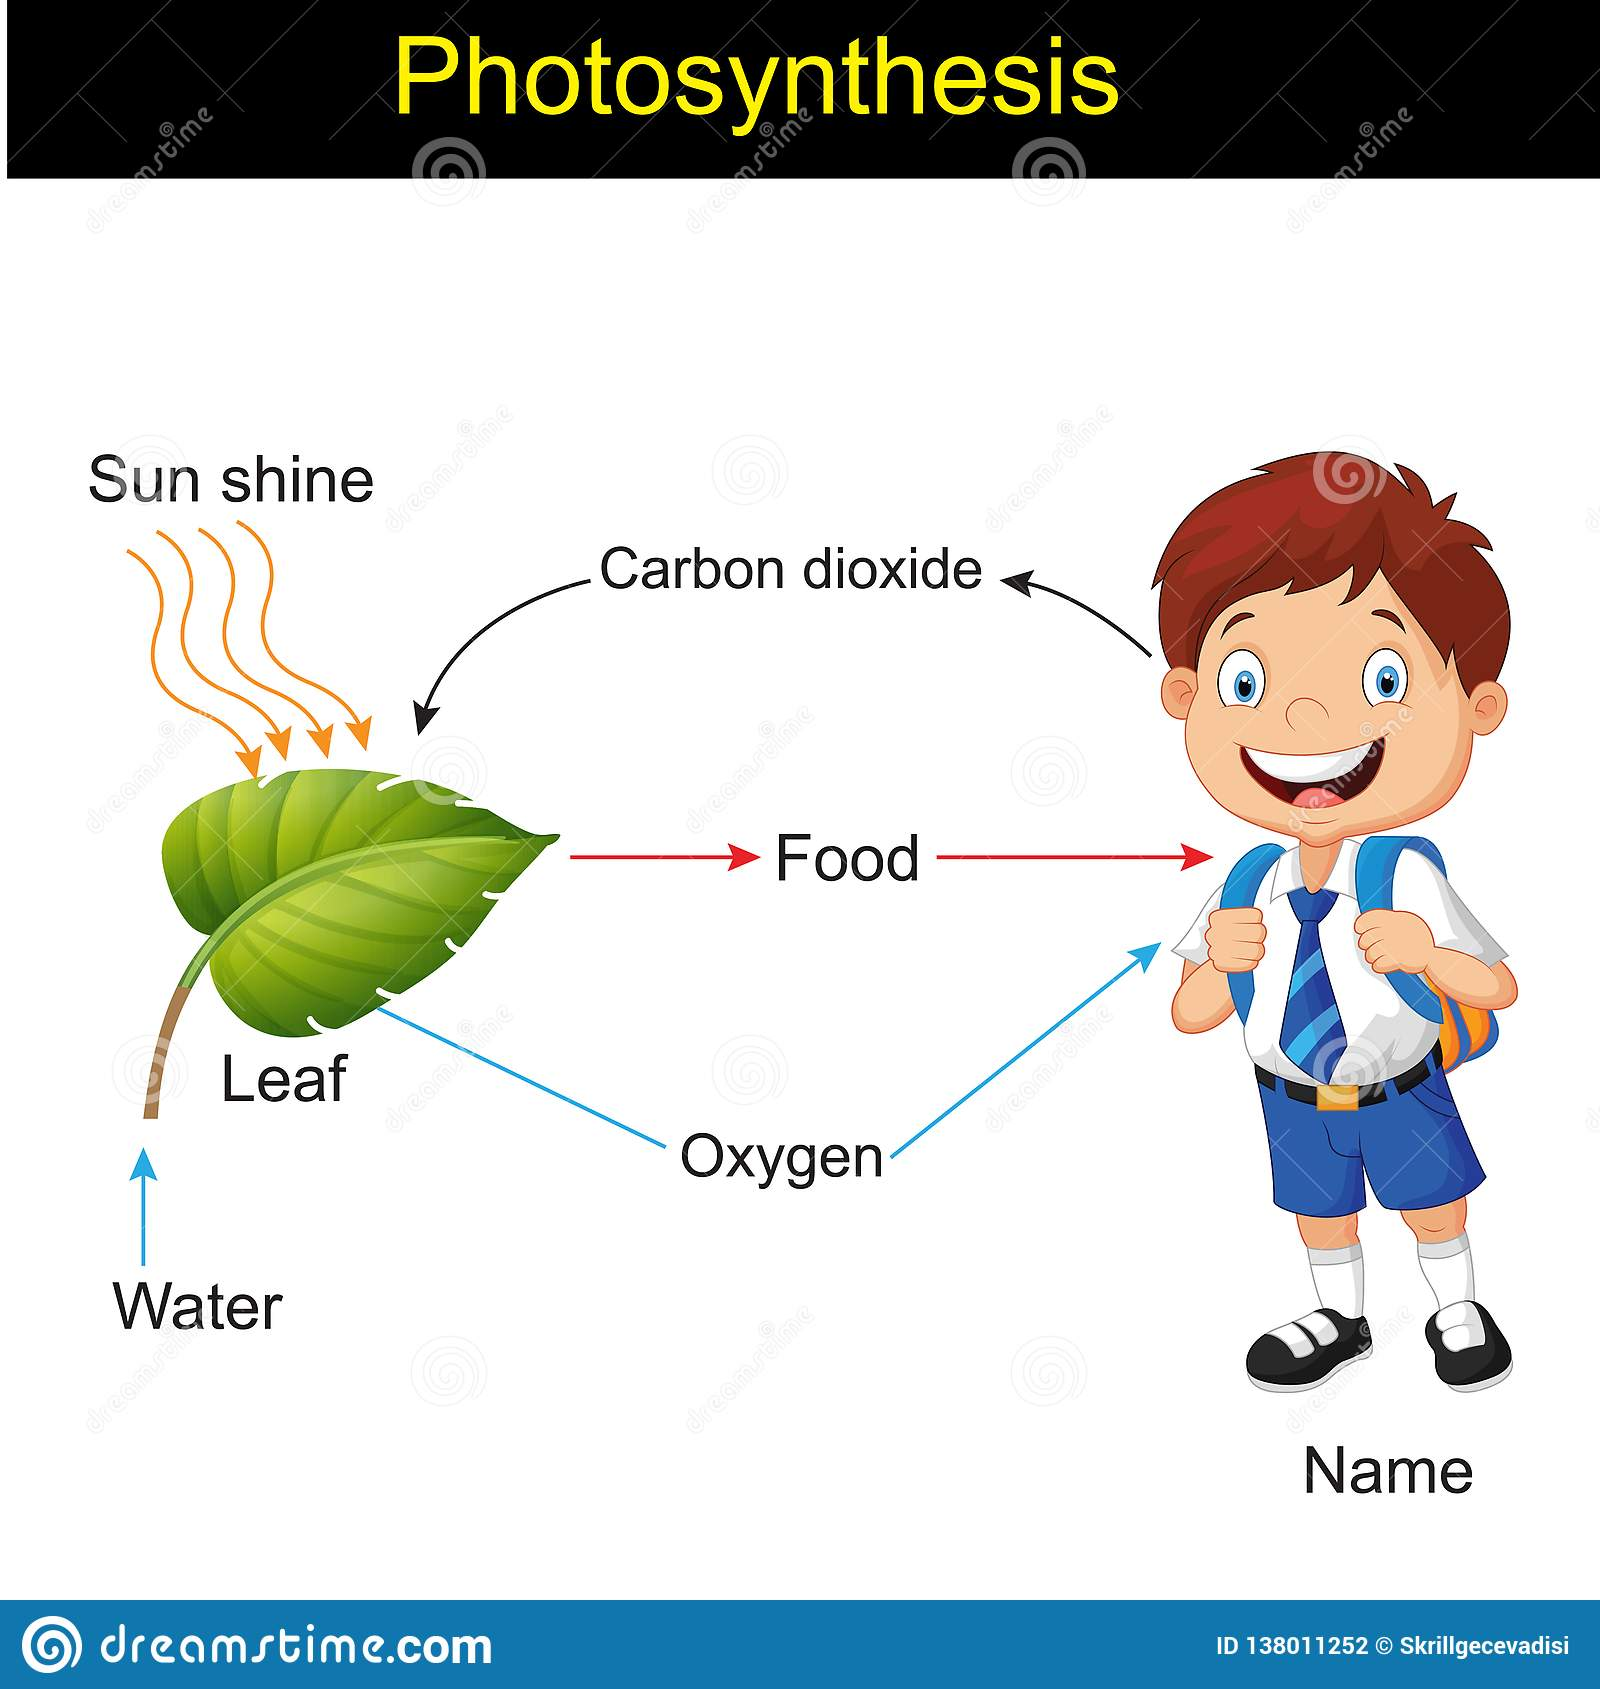 Biology Photosynthesis Modeling Version 01 Stock Vector Illustration Of Diagram Biology 138011252 Photosynthesis diagram name checklist included? https www dreamstime com print image138011252